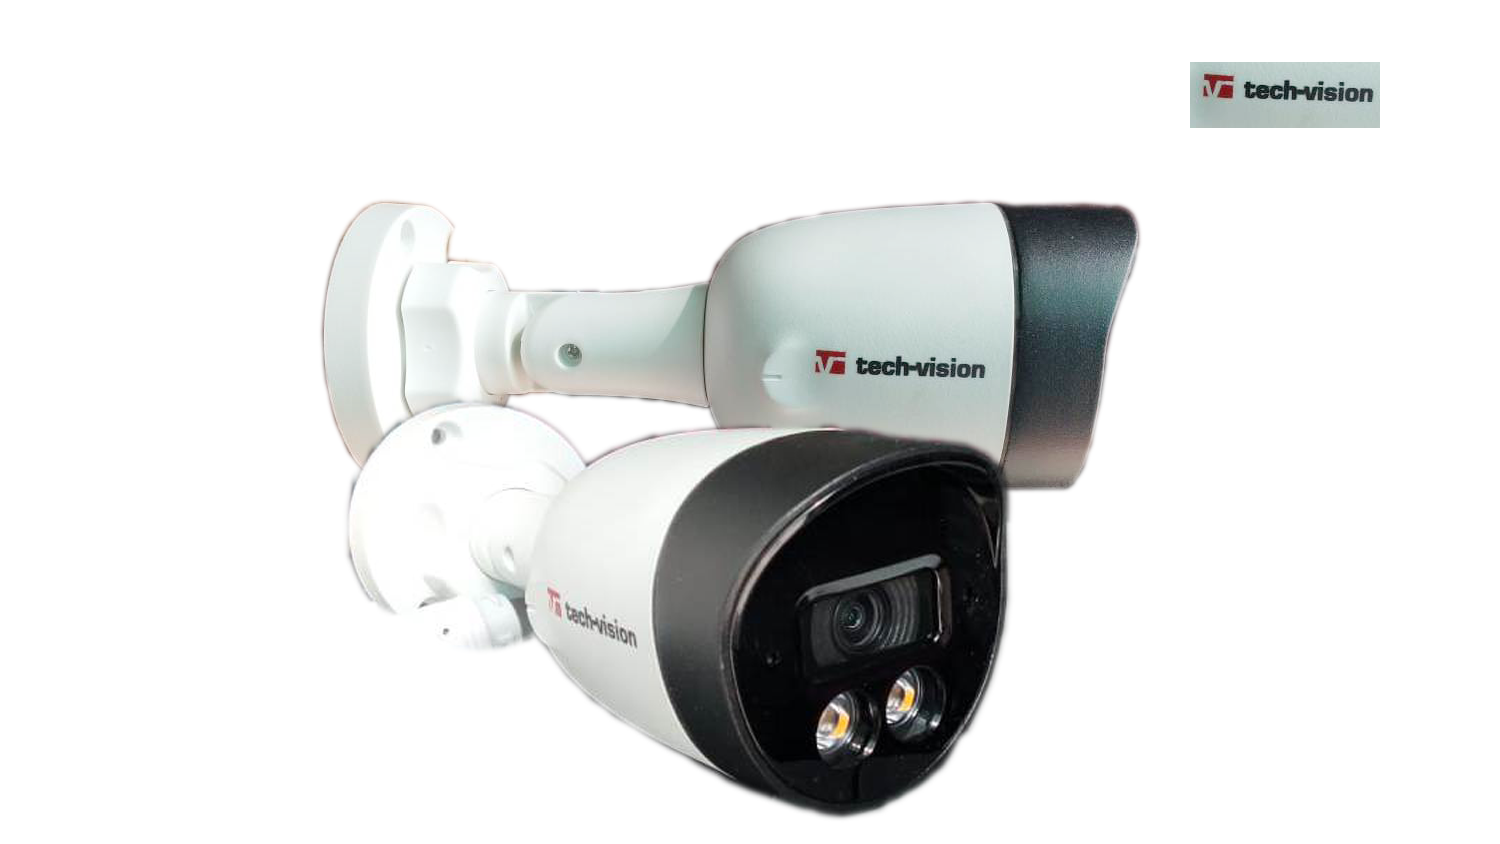 TECH VISION 2.4 MP COLOR NIGHT VISION FULL HD